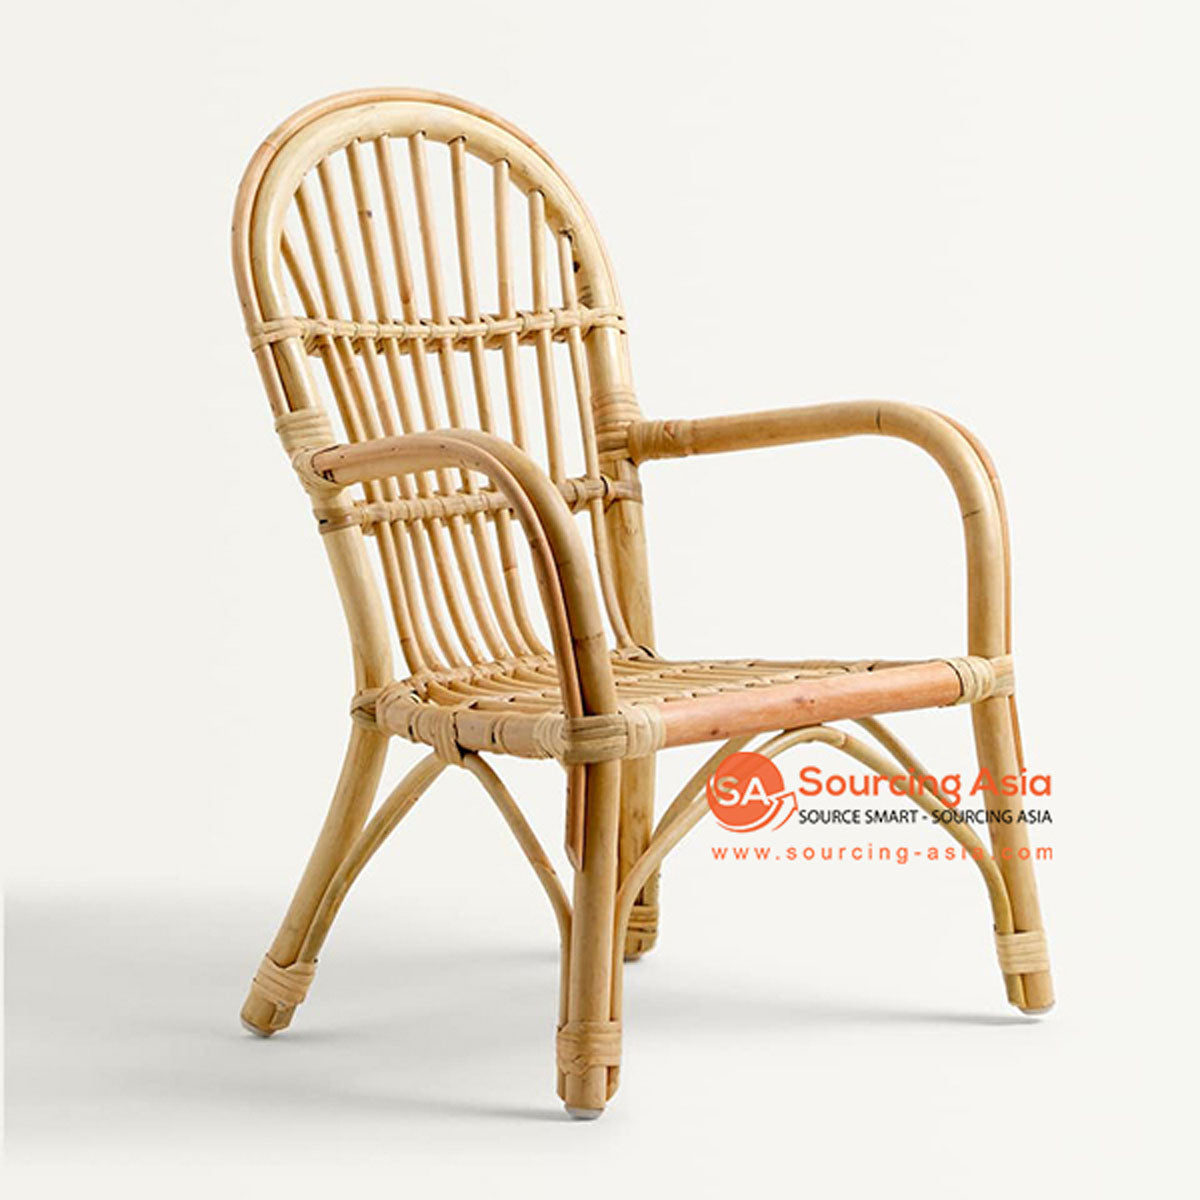 SHL099 - NATURAL UPHOLSTERED DESIGN ARMCHAIR